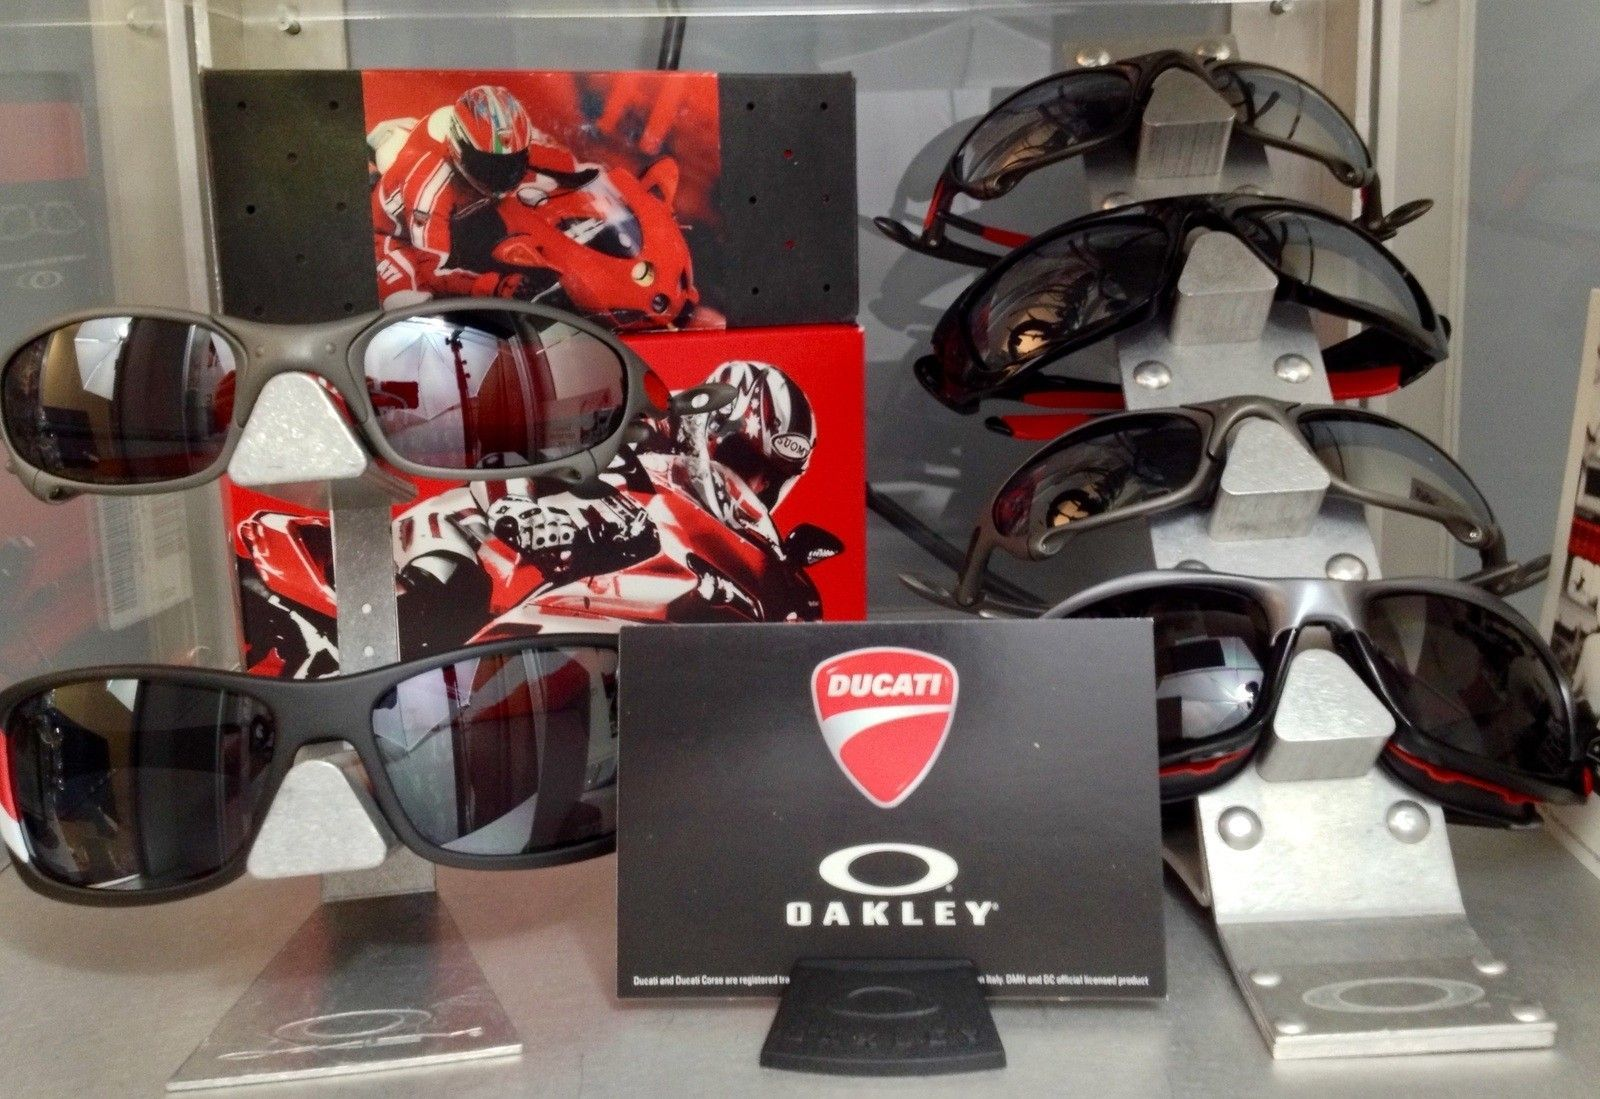 RoTor's Oakley room And update - image.jpg